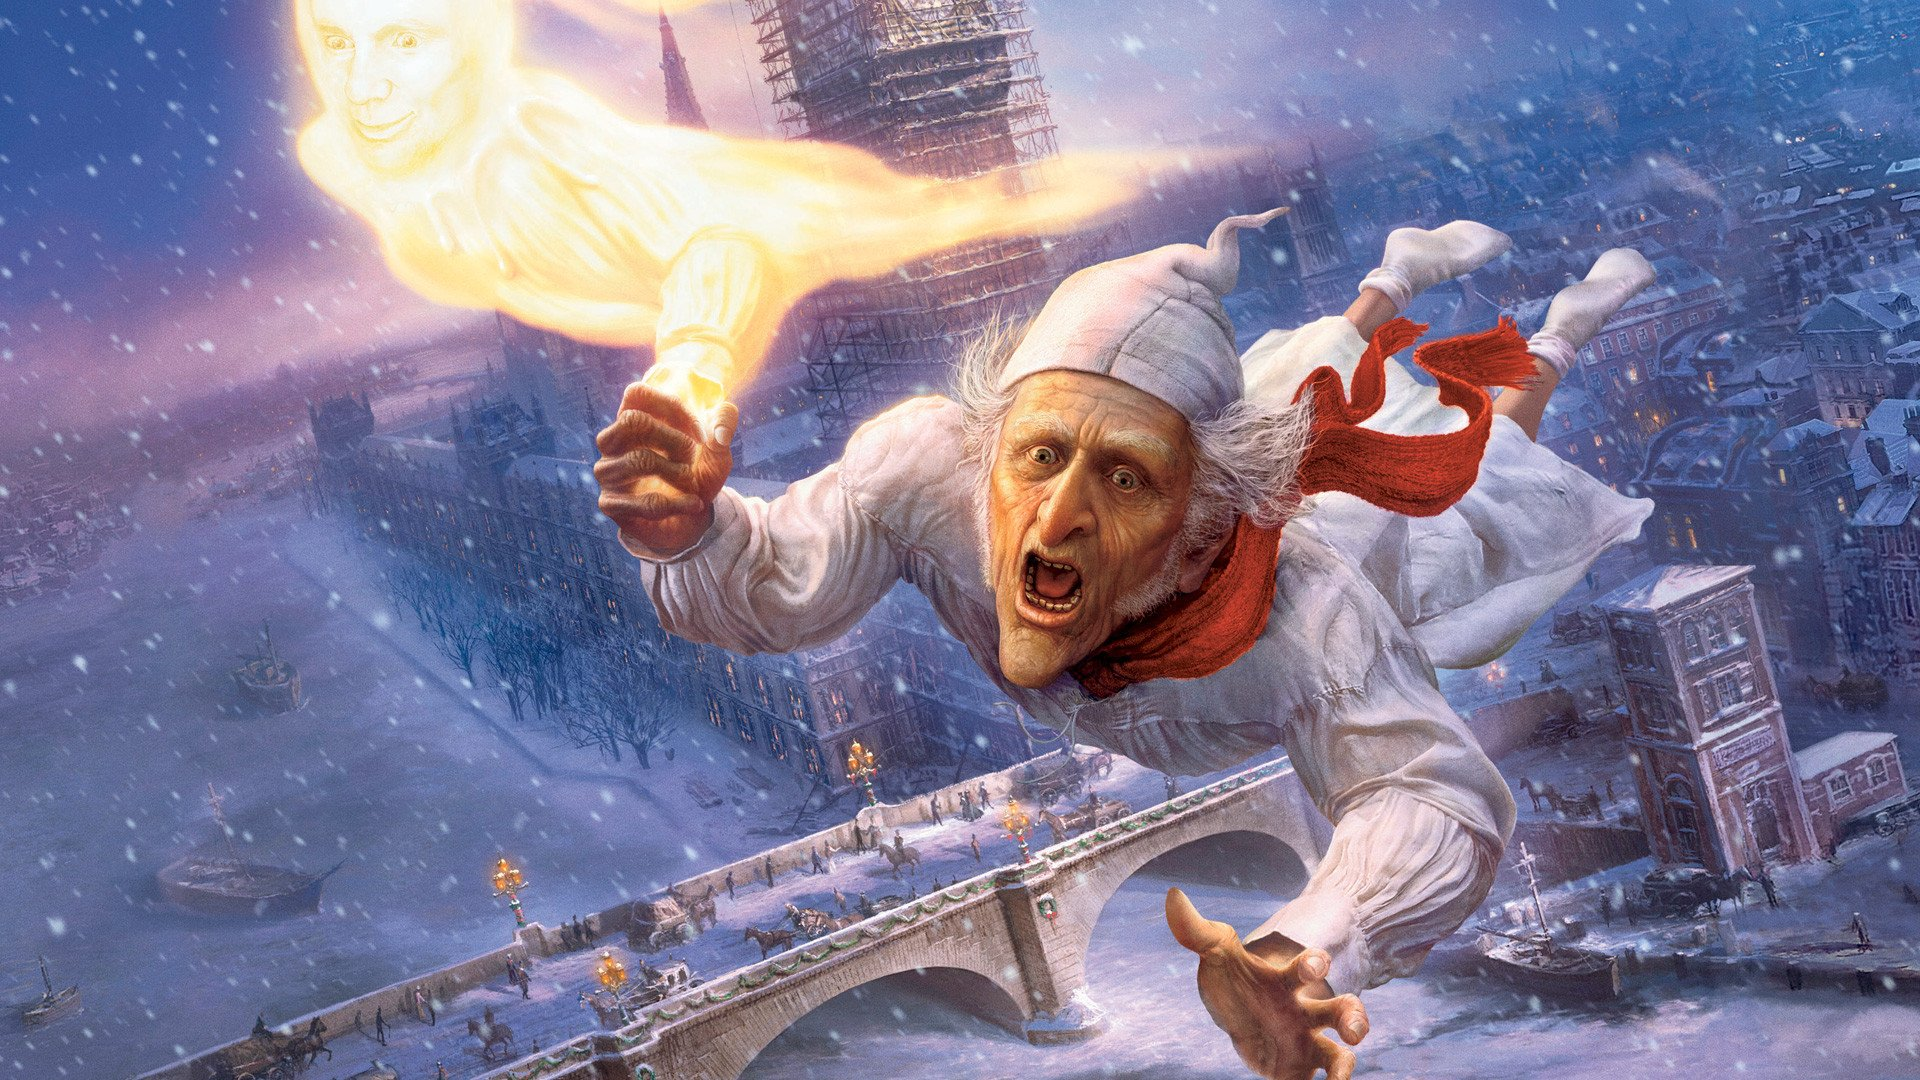 A Christmas Carol HD Wallpaper | Background Image | 1920x1080 | ID:86317 - Wallpaper Abyss